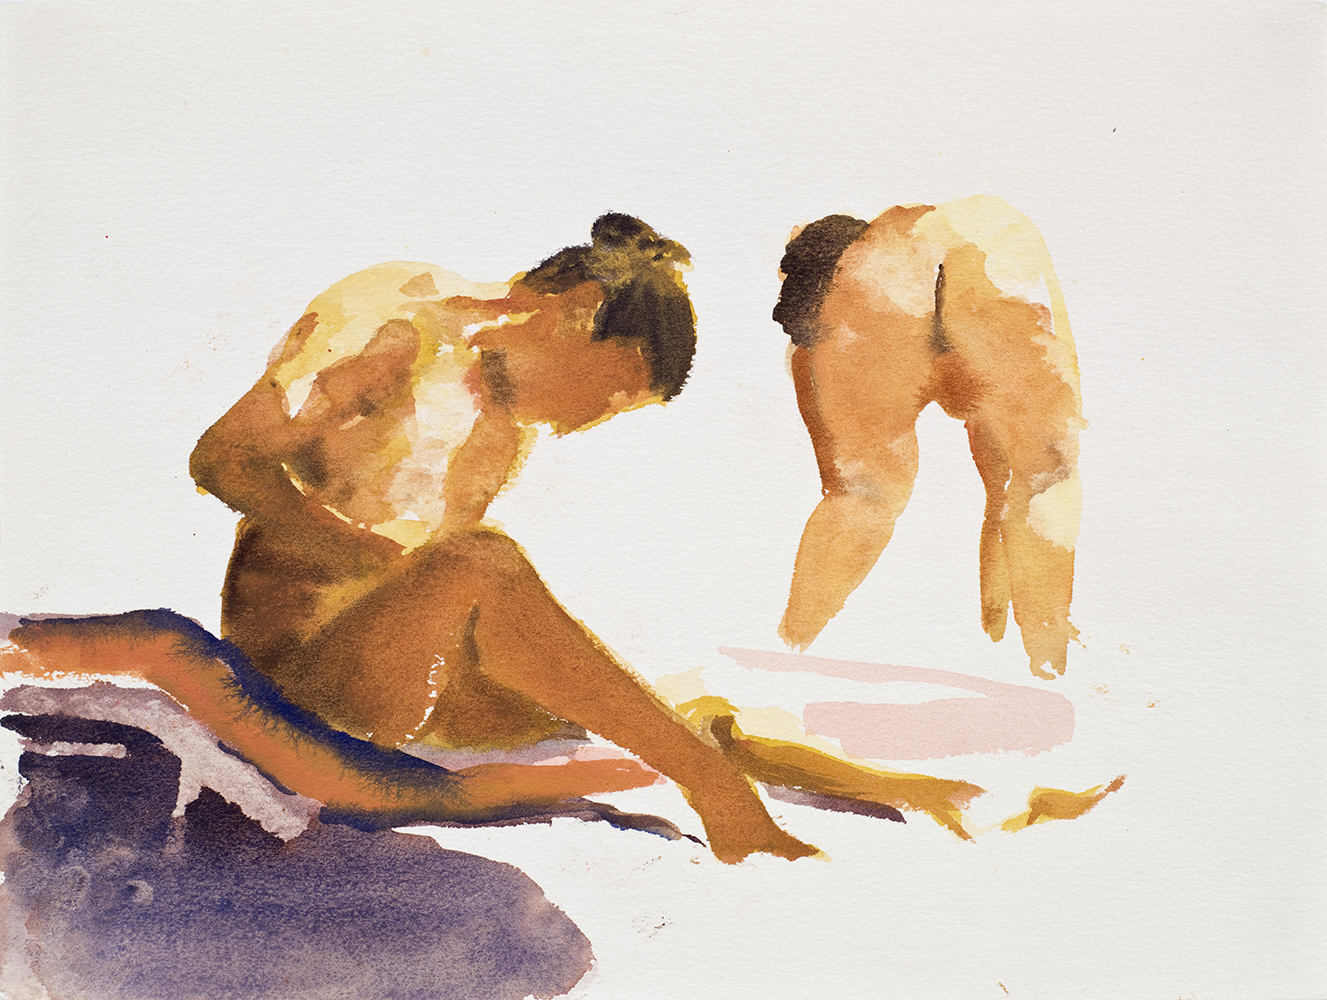 """Untitled, 1989, watercolor on paper, 9.5"""" x 12.5"""""""